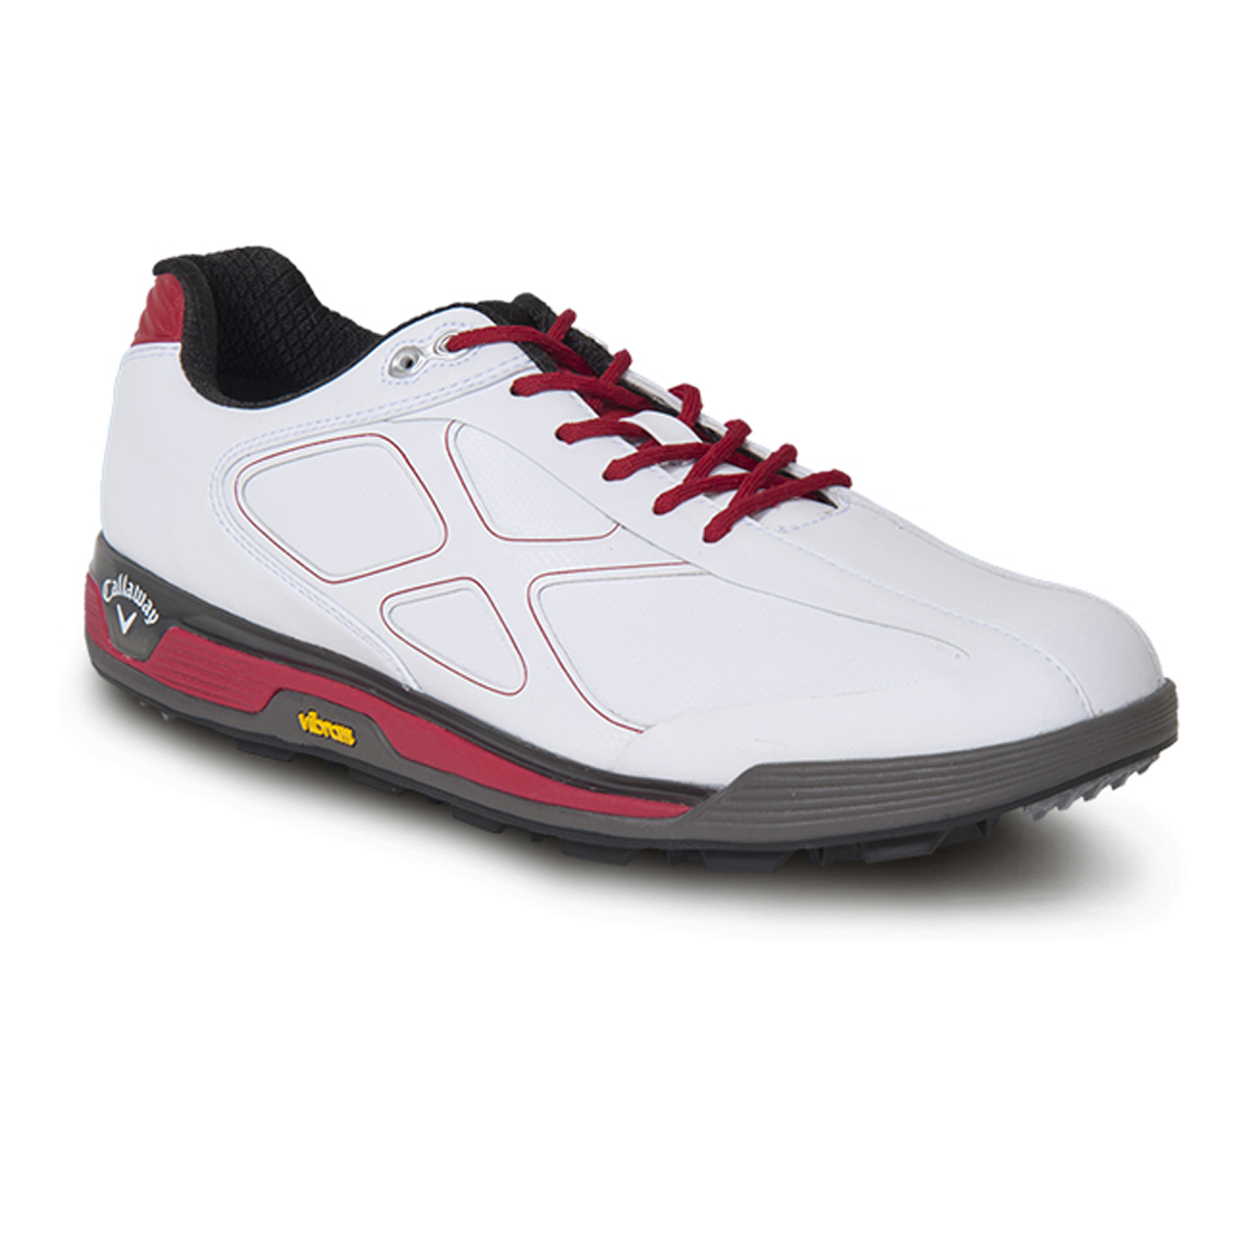 How Much Should You Spend On Golf Shoes